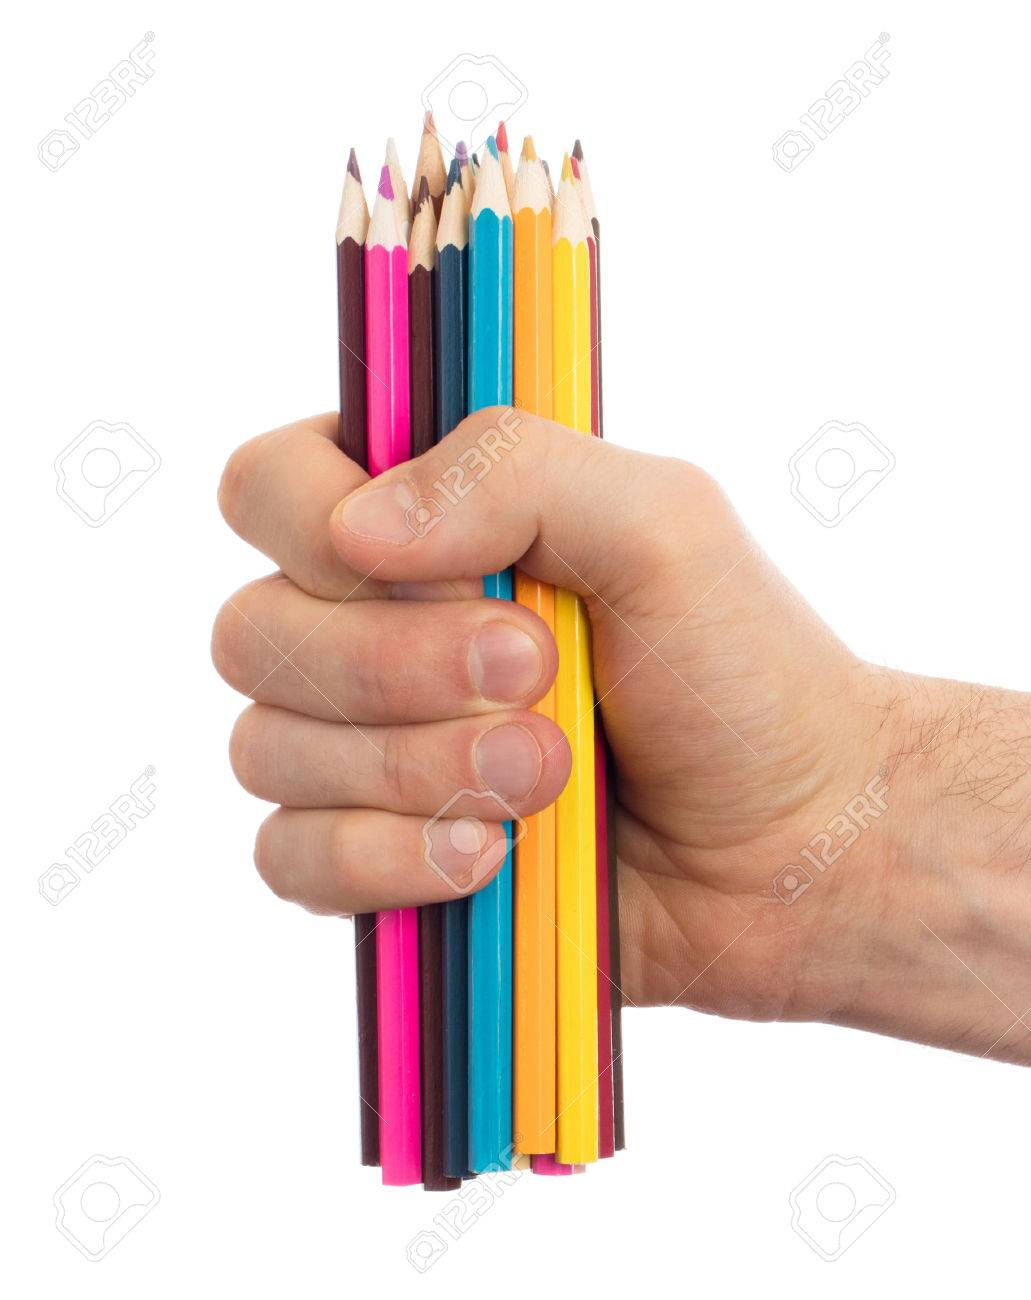 Used pencils in hand isolated on white background Stock Photo - 55033701